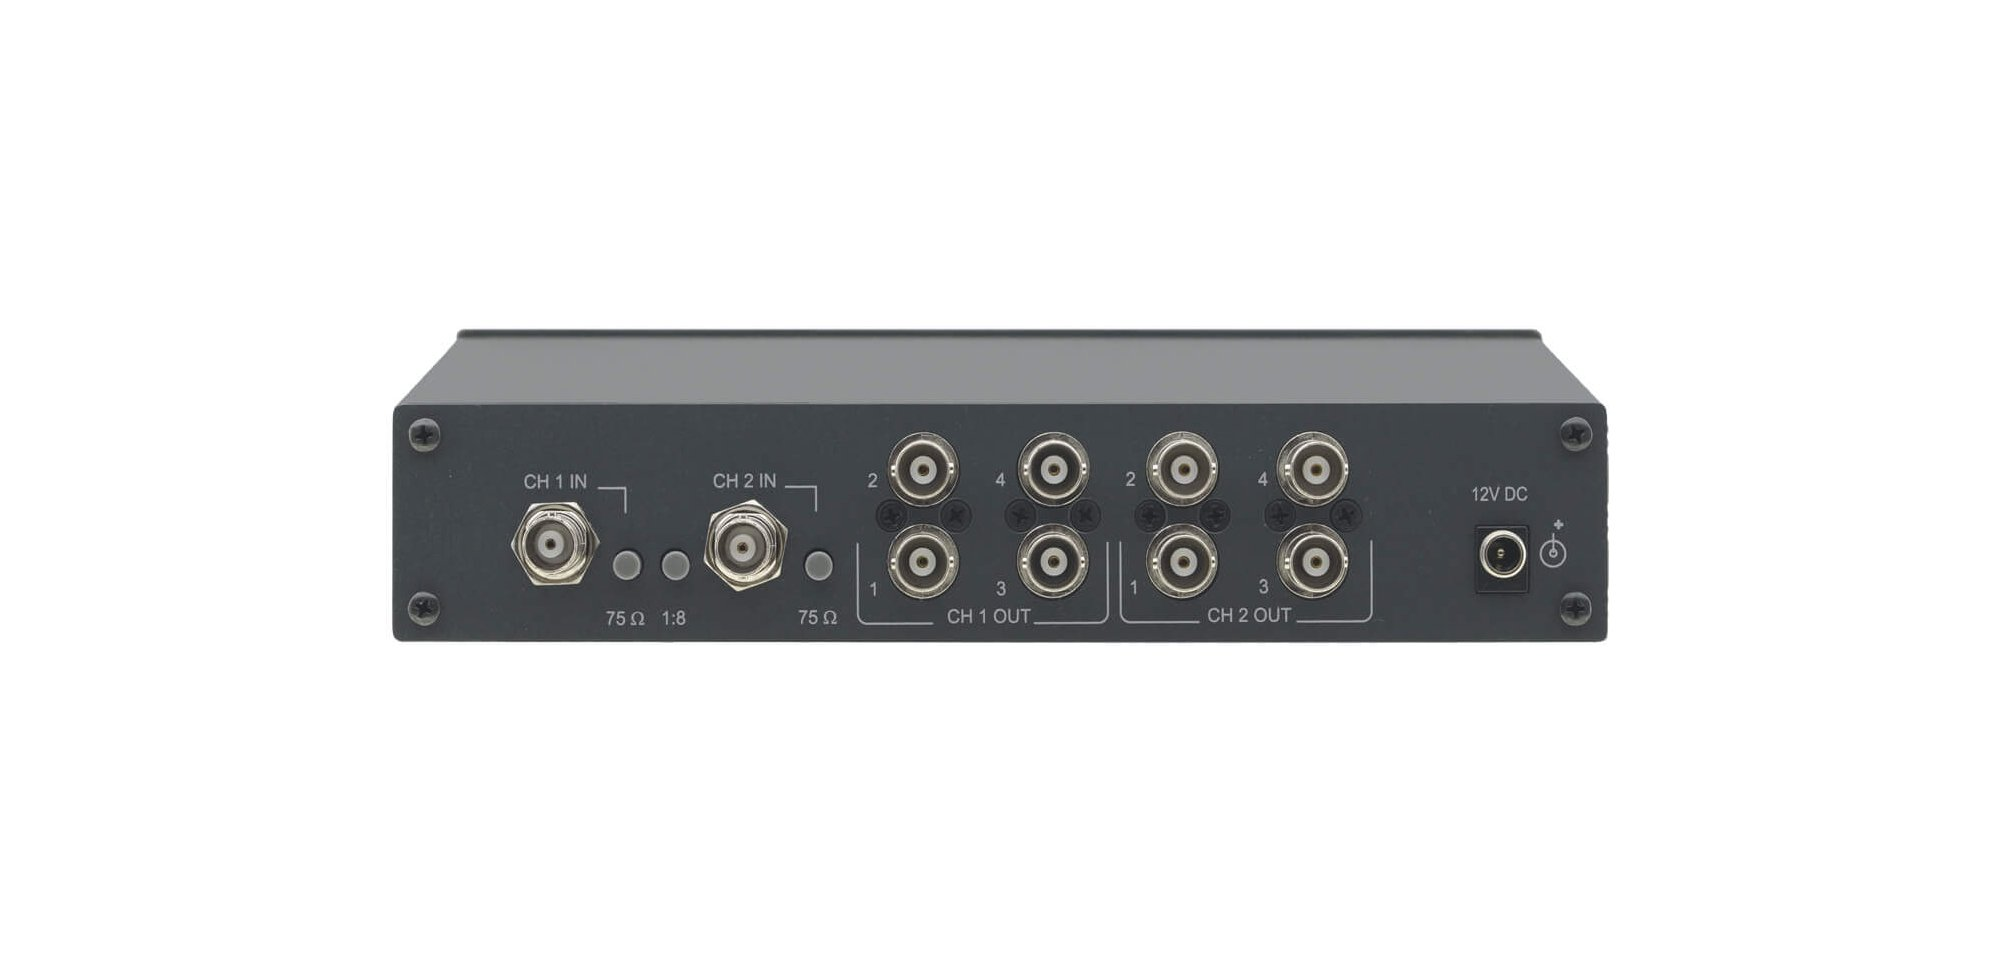 1:8 Composite or SDI Video Distribution Amplifier